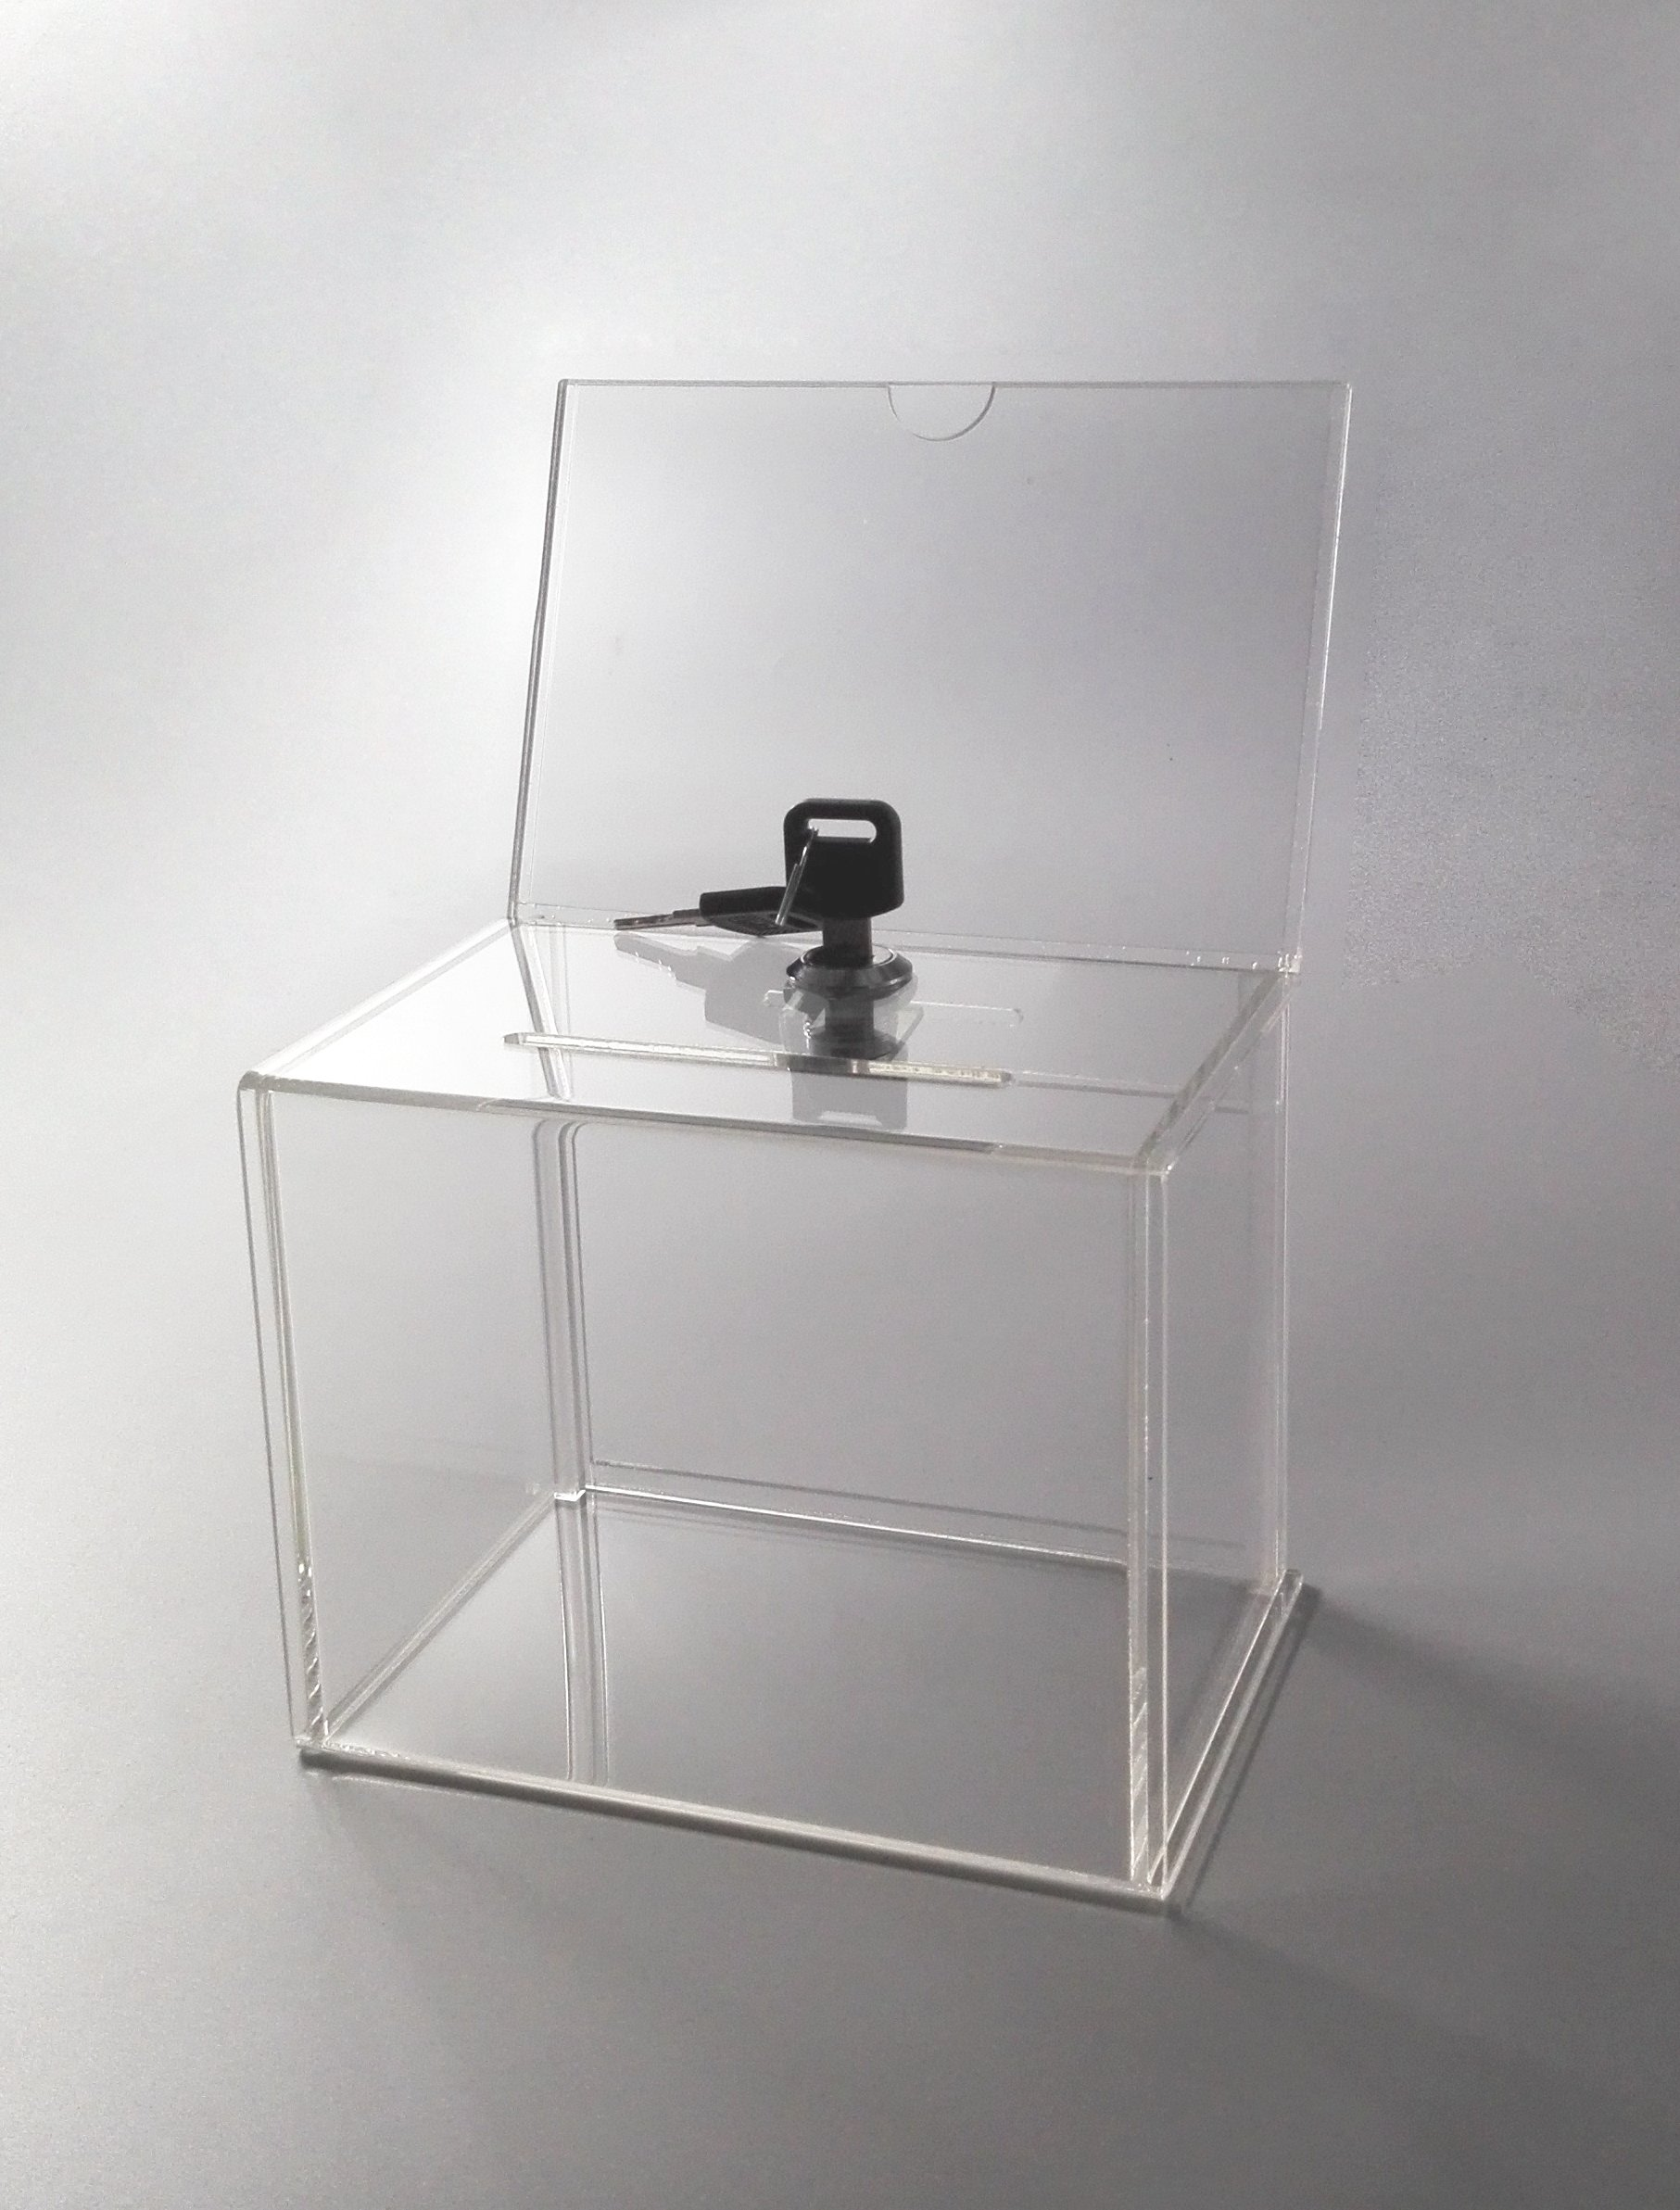 FixtureDisplays 6.1'' x 8.3'' x 4.4'' Acrylic Ballot Box w/6 x 4 Header & Lock - Clear 19216 19216